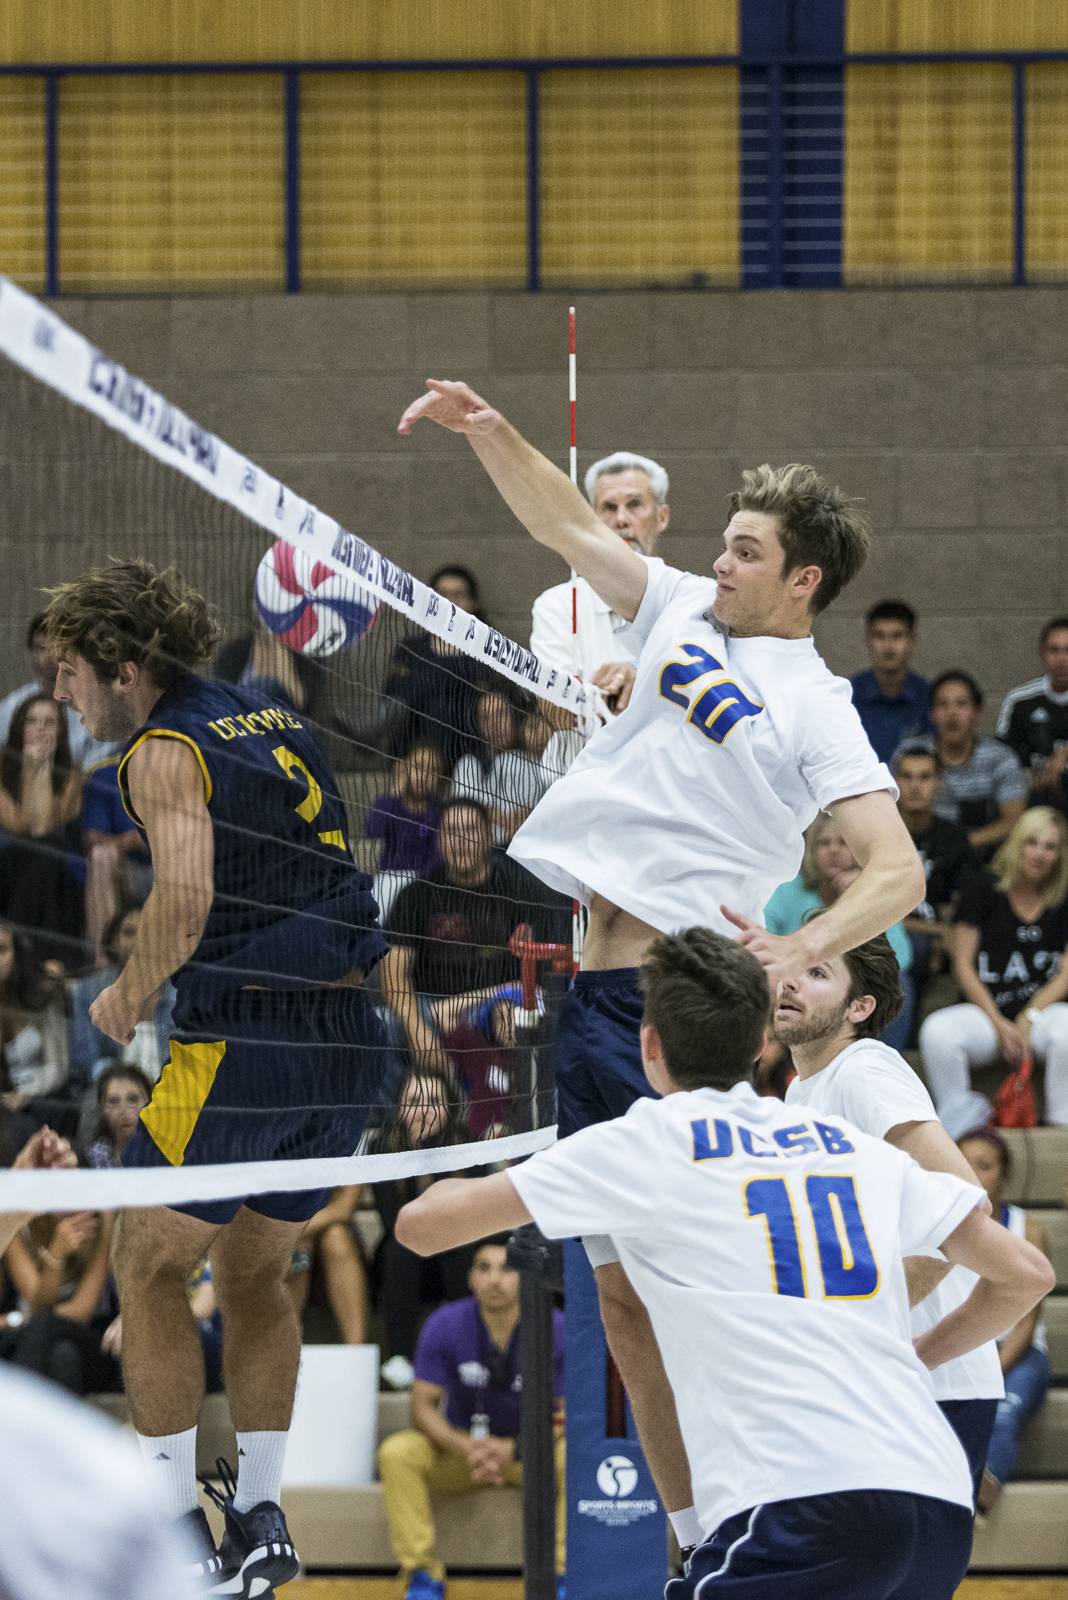 Ryan Hardy blocks a shanked pass coming just over the net. Eric Swenson/Daily Nexus